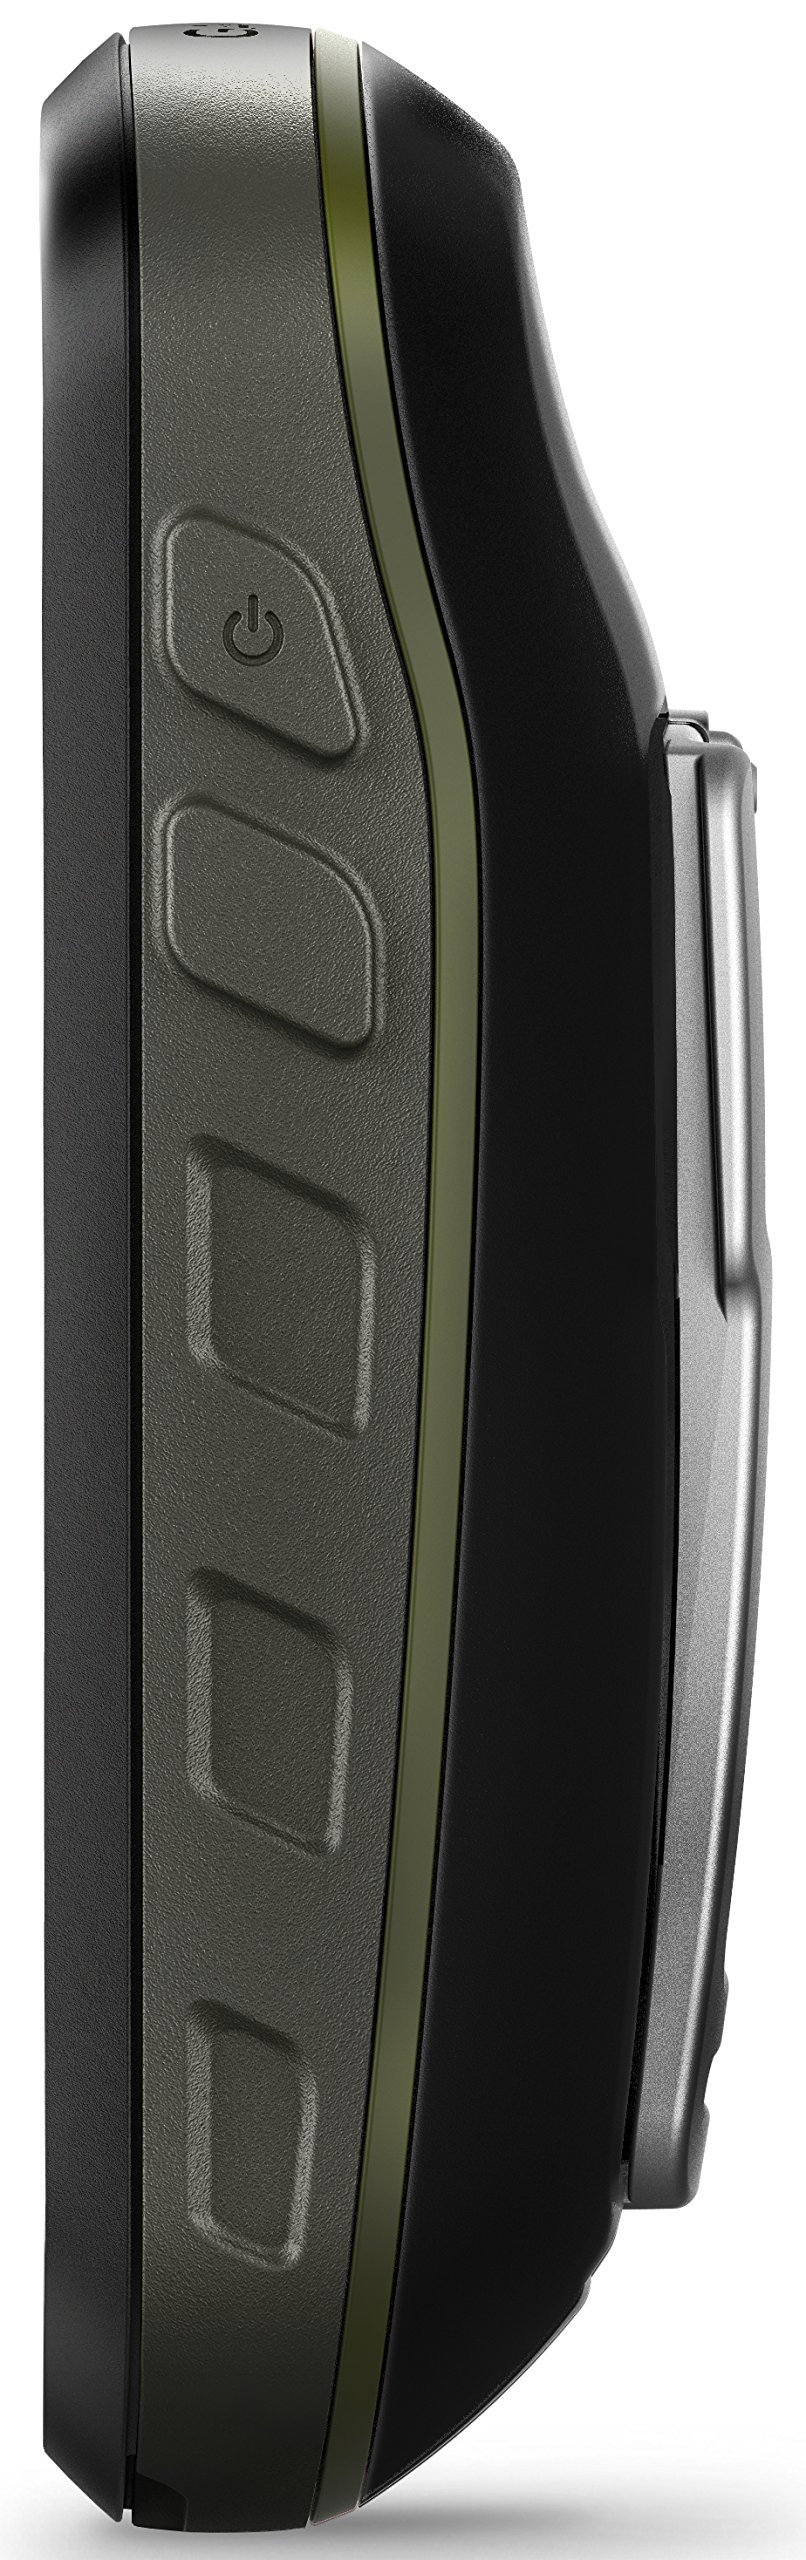 Garmin Oregon 700 Handheld GPS Navigation System 9